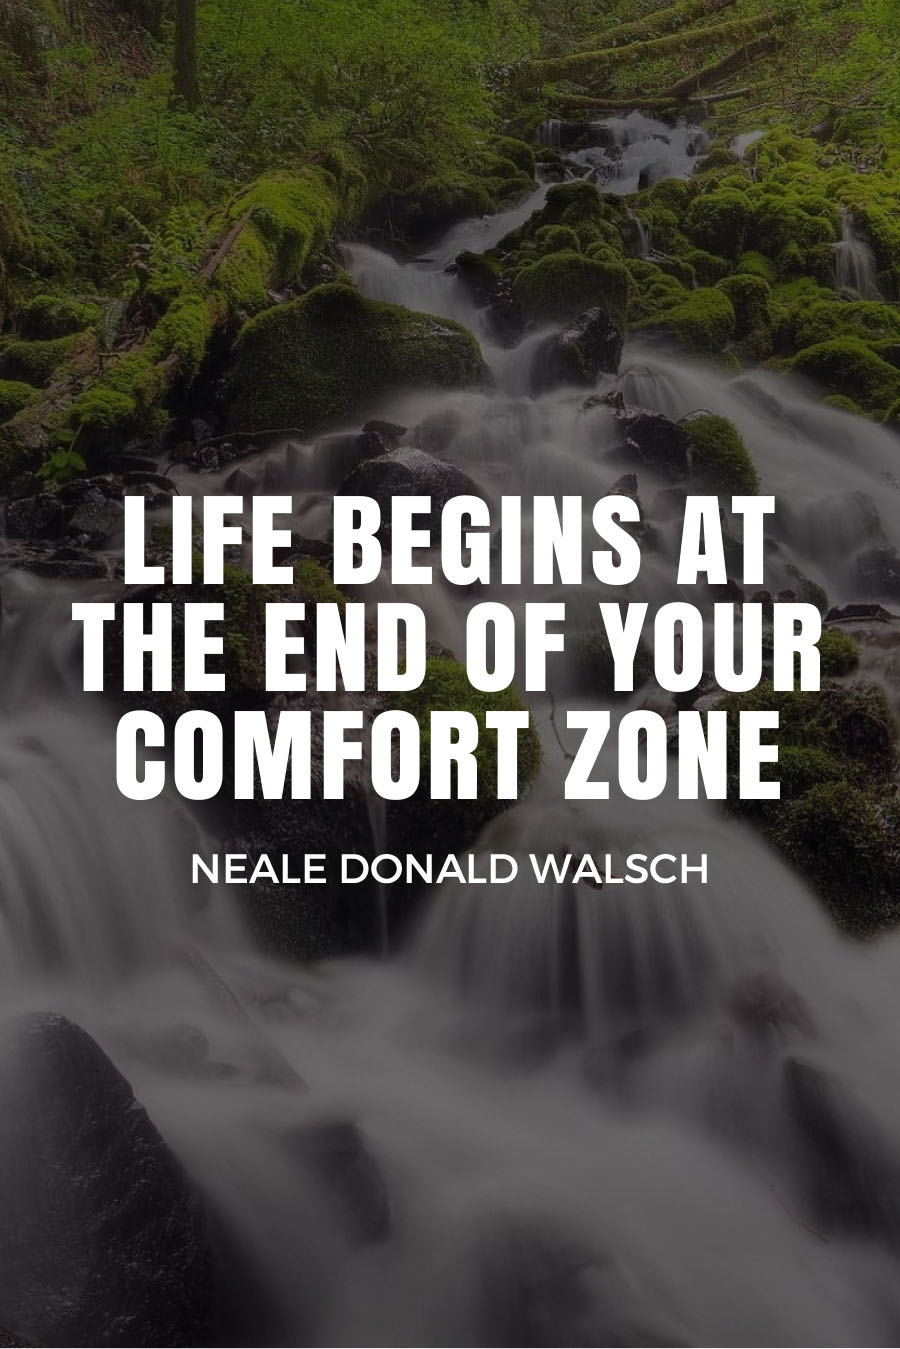 Five Quotes About Travel Fears - LIFE BEGINS AT THE END OF YOUR COMFORT ZONE - NEALE DONALD WALSCH